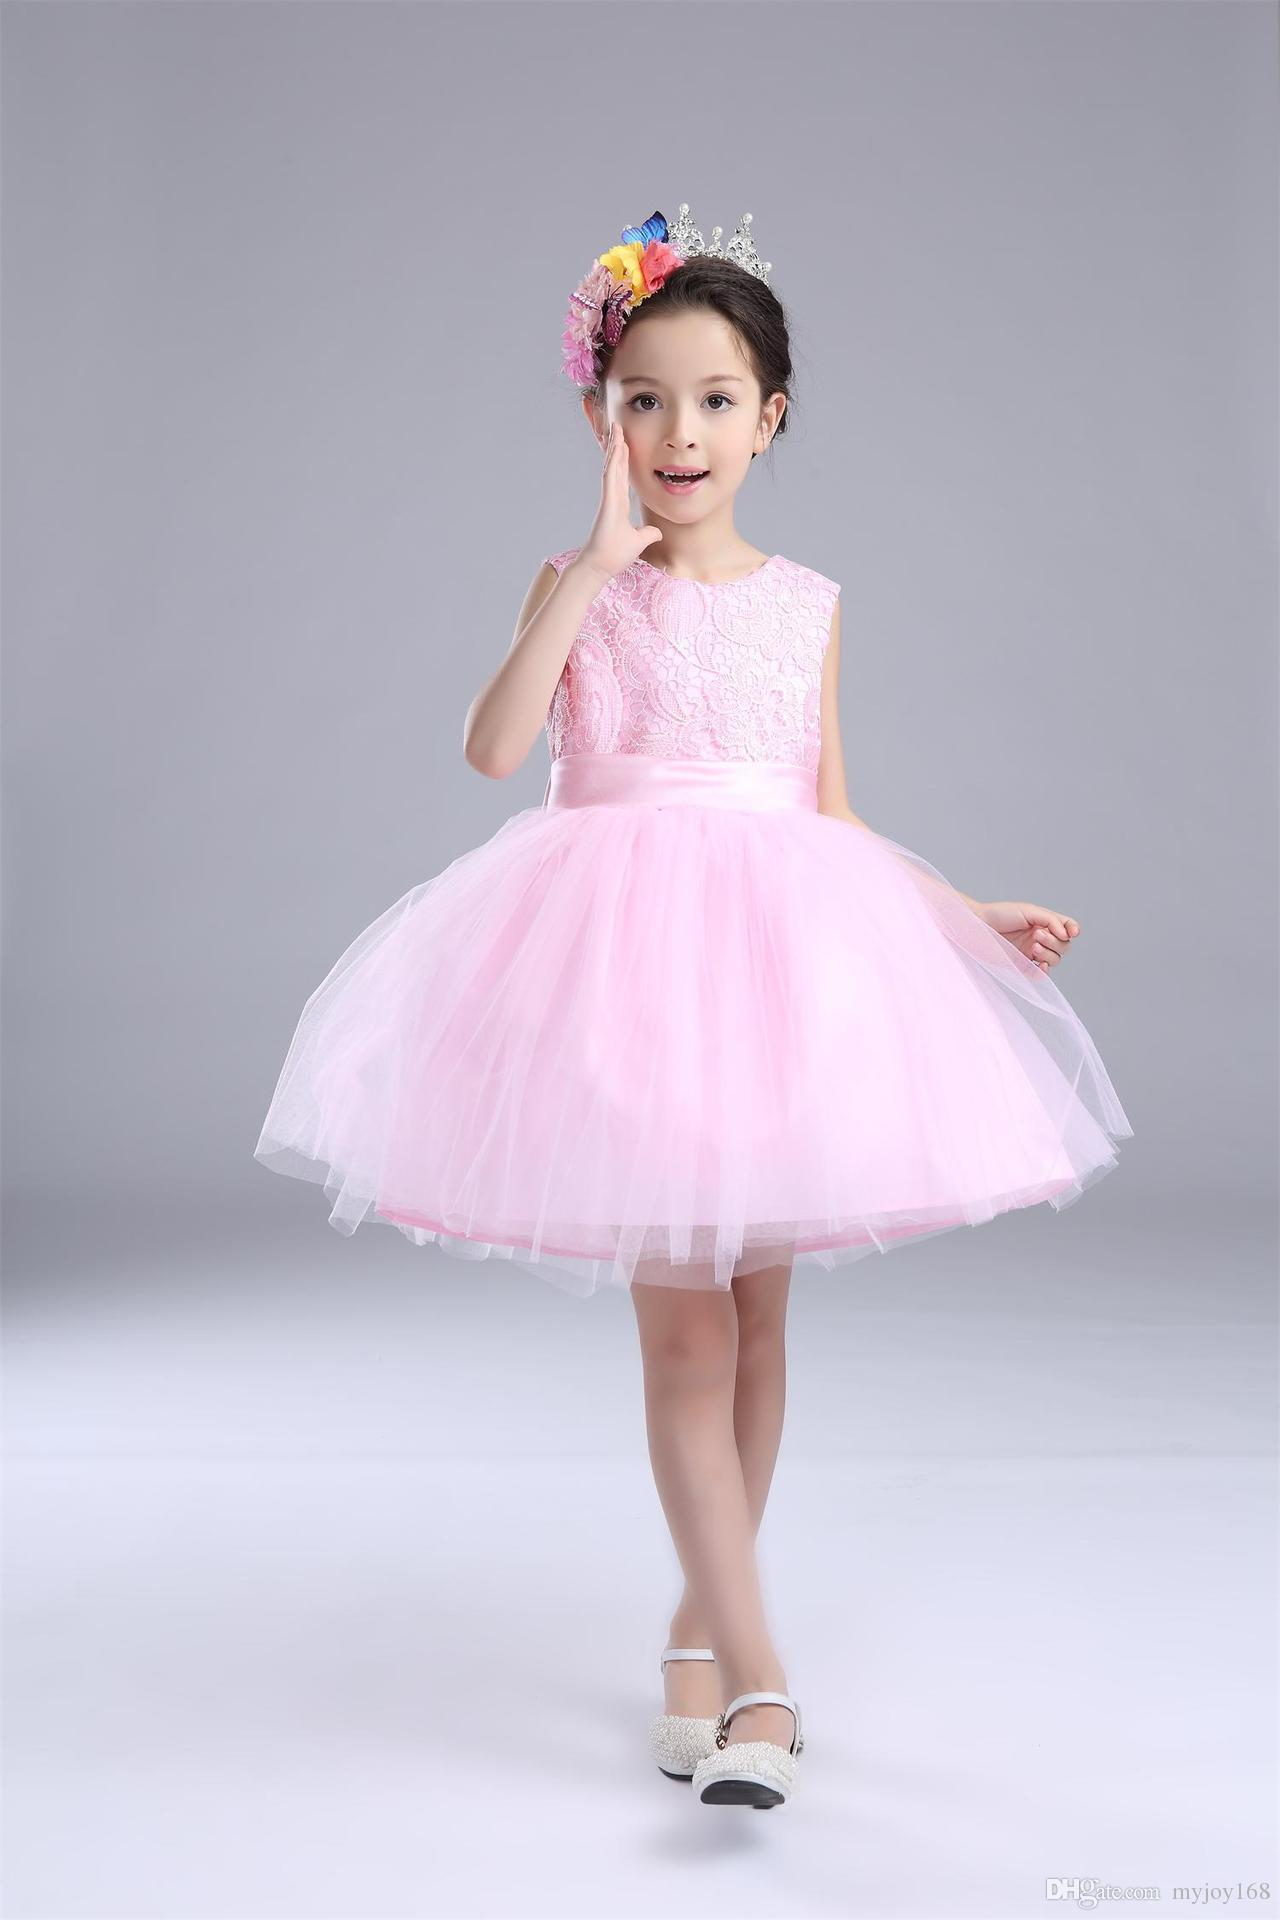 Beautiful Baby Girl Children Dresses Princess Bridesmaid Flower